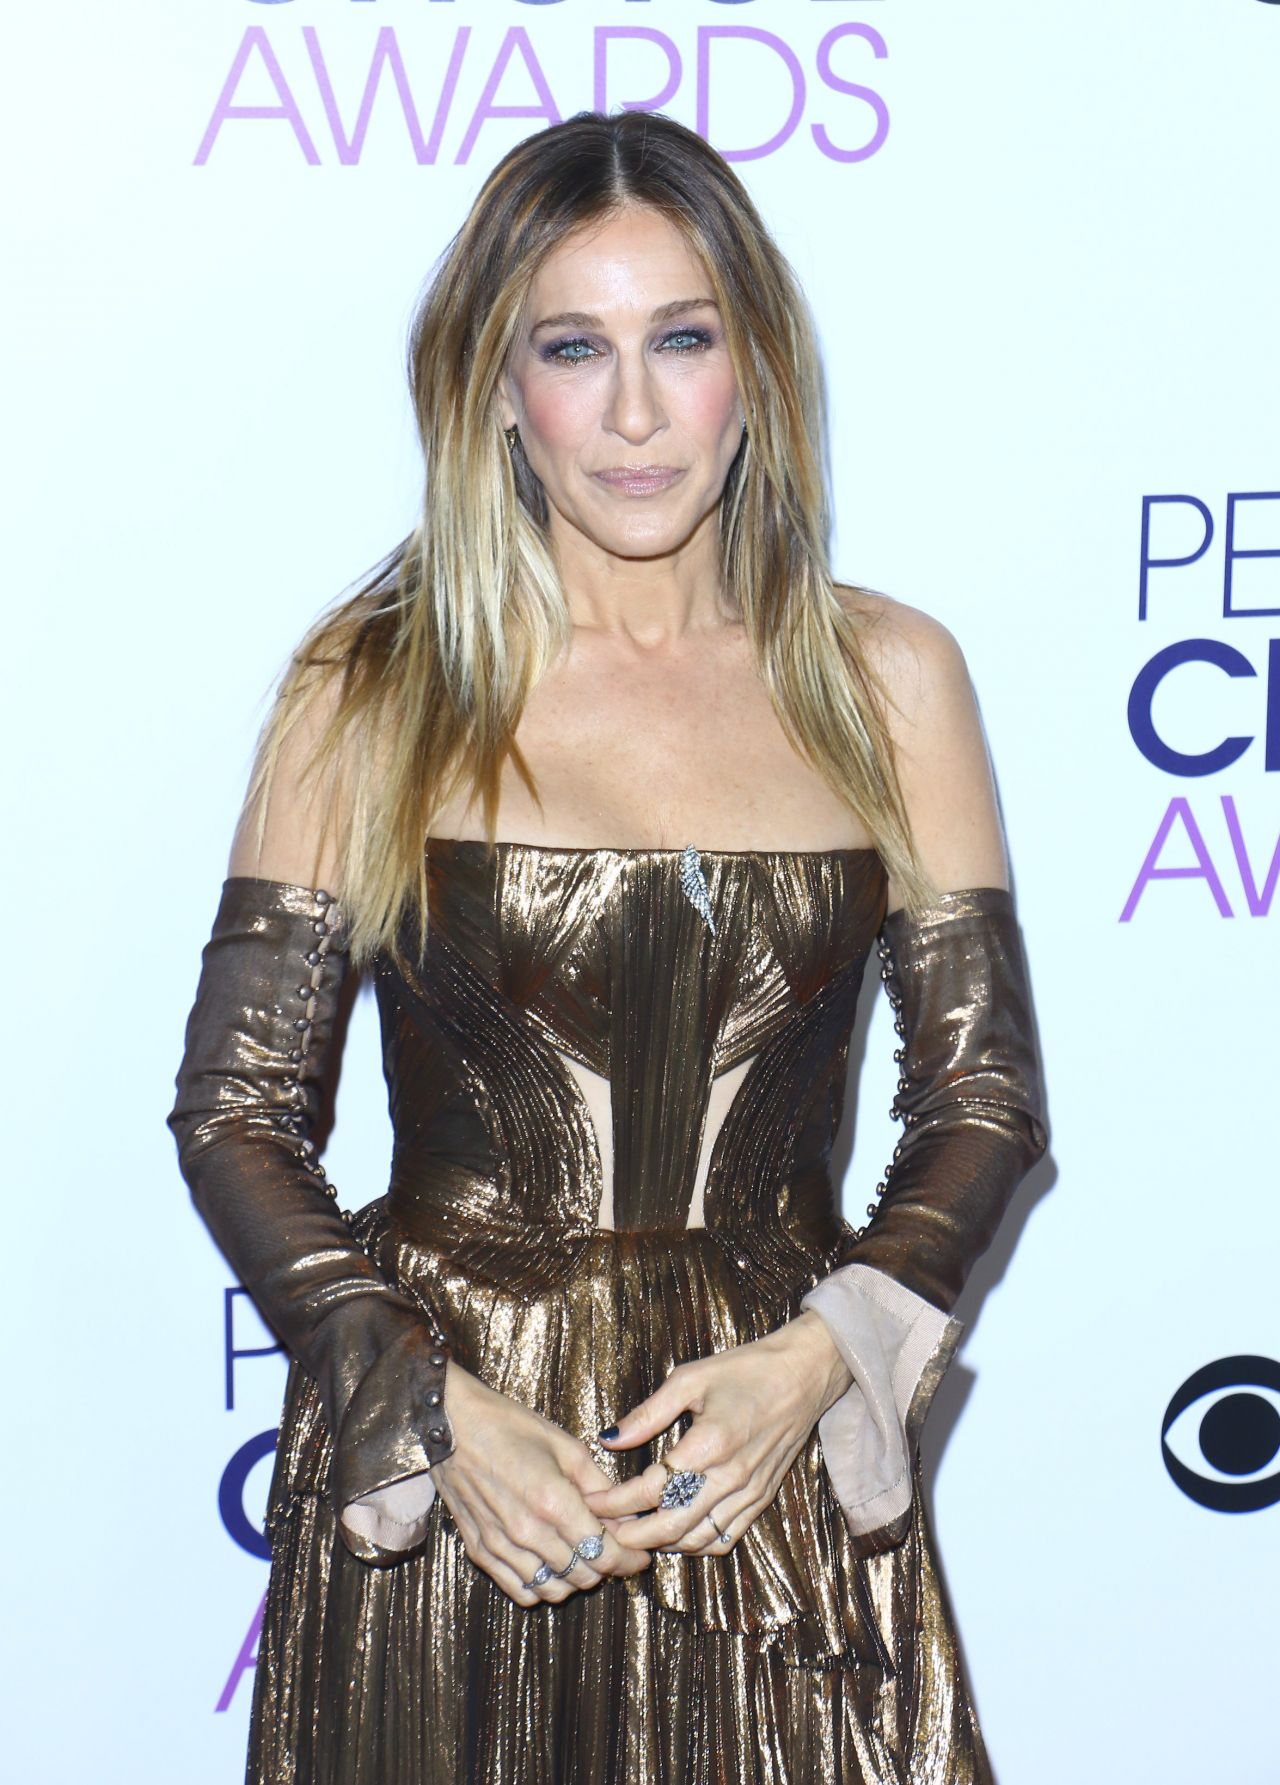 Sarah Jessica Parker Latest Photos - CelebMafia